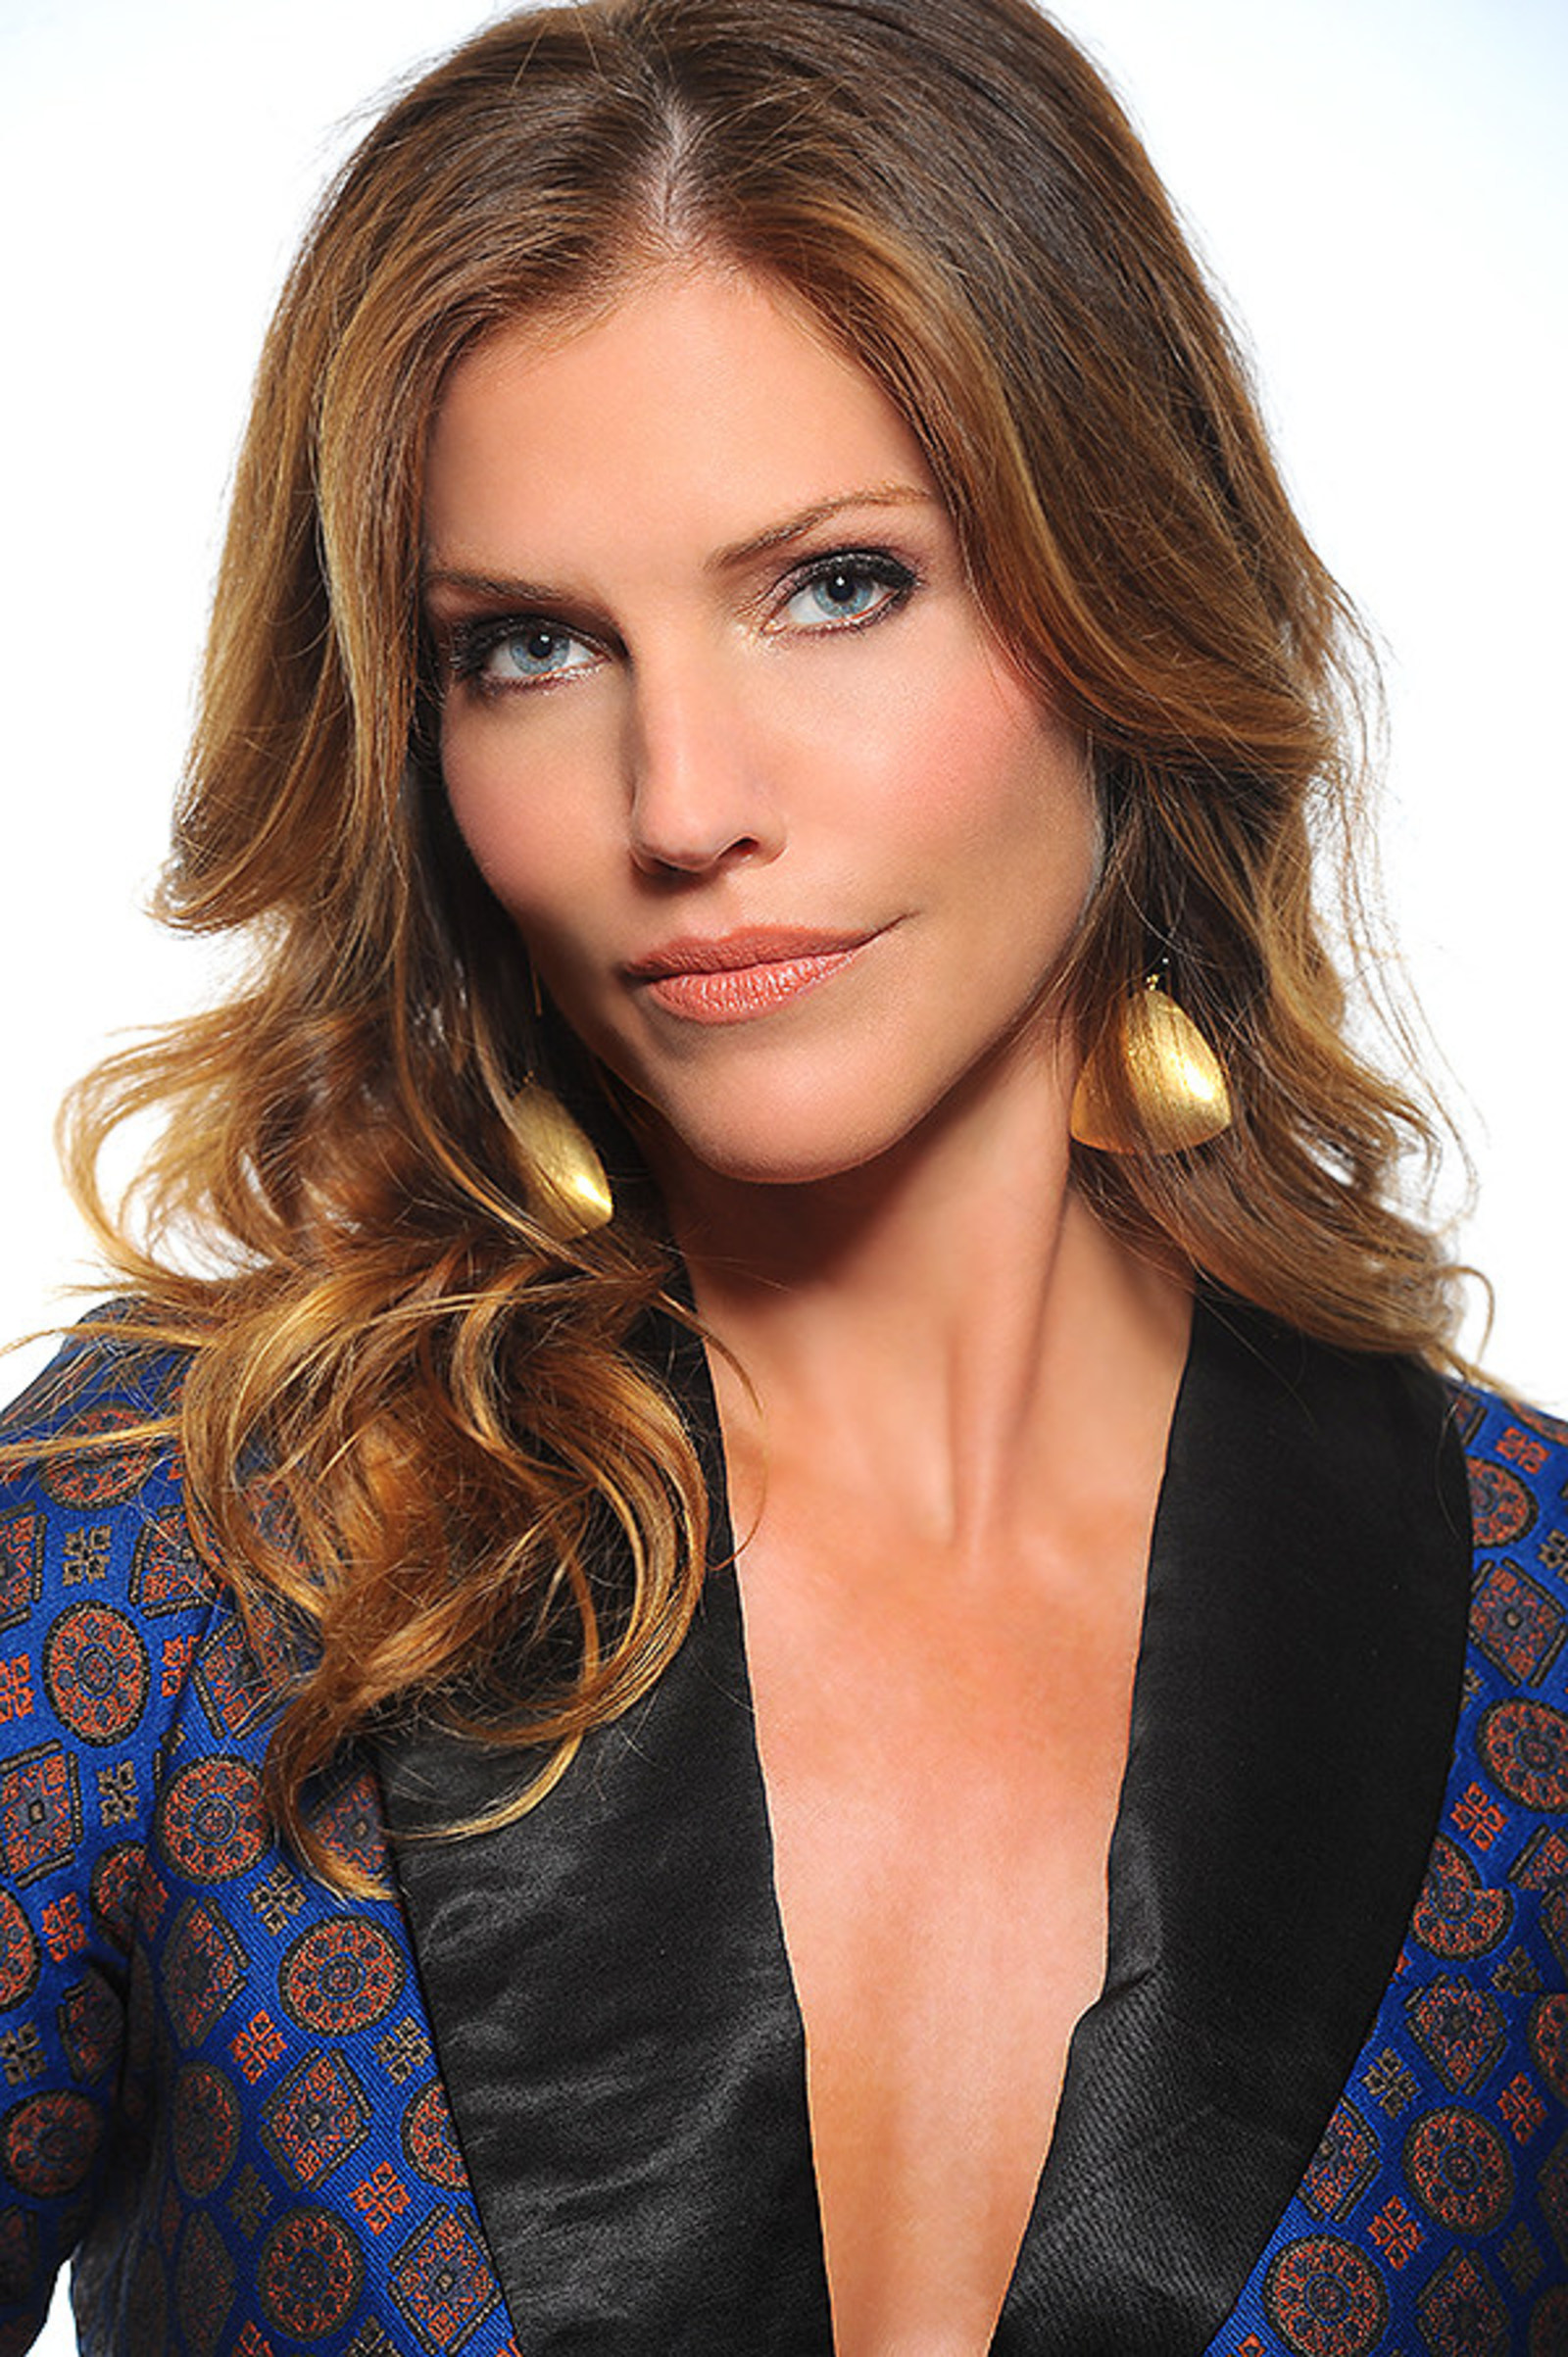 David charvet hairstyles for 2017 celebrity hairstyles by - Tricia Helfer American Gem Trade Association